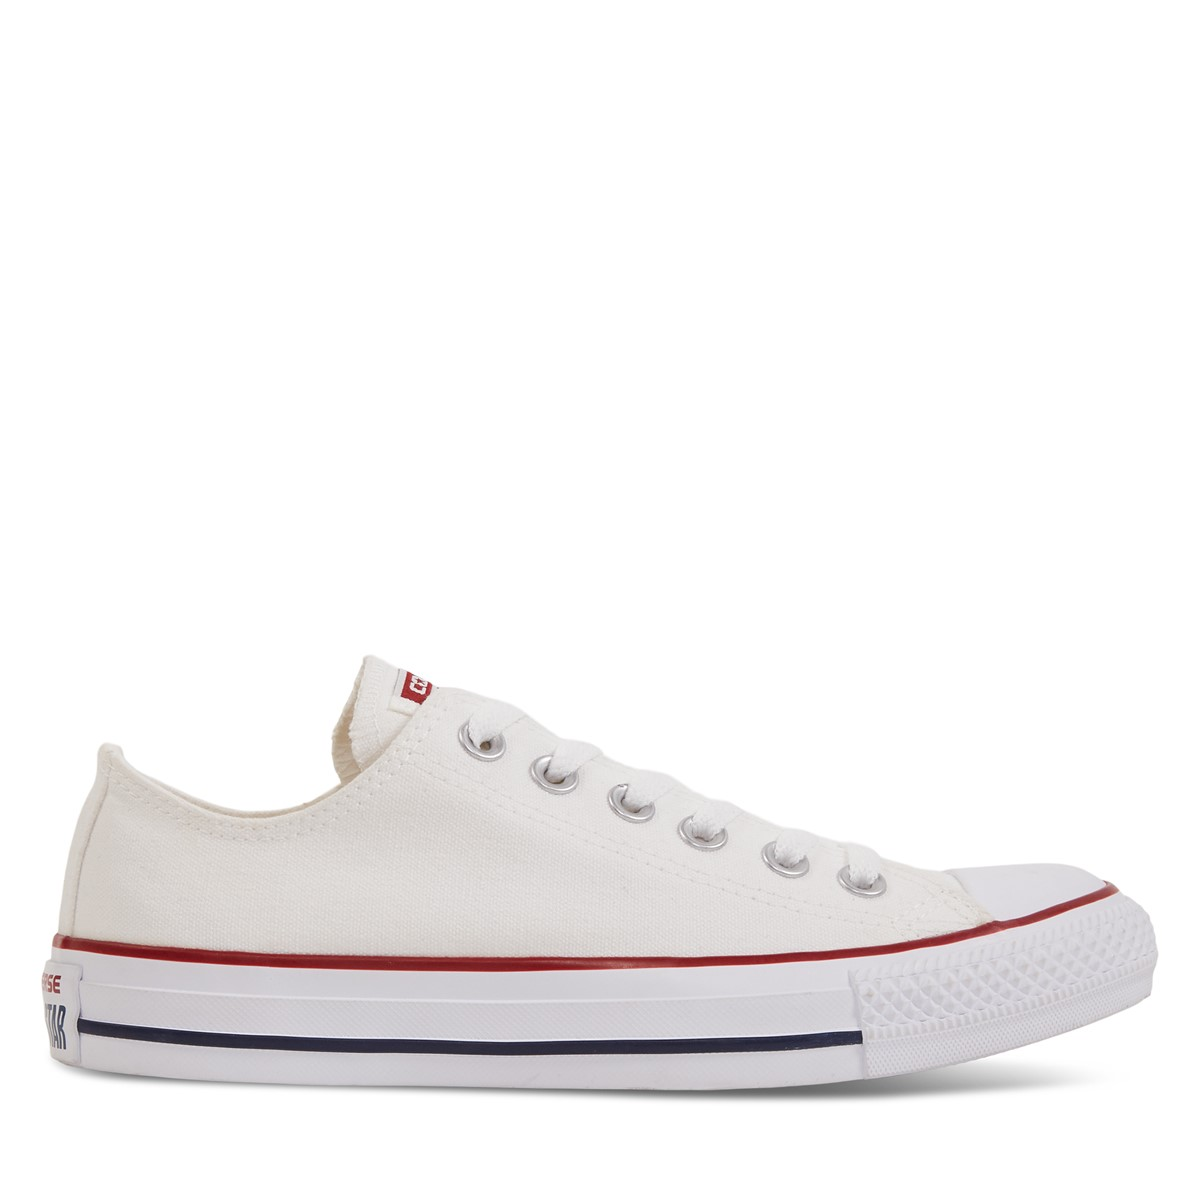 Women's Chuck Taylor All Star Sneakers in White